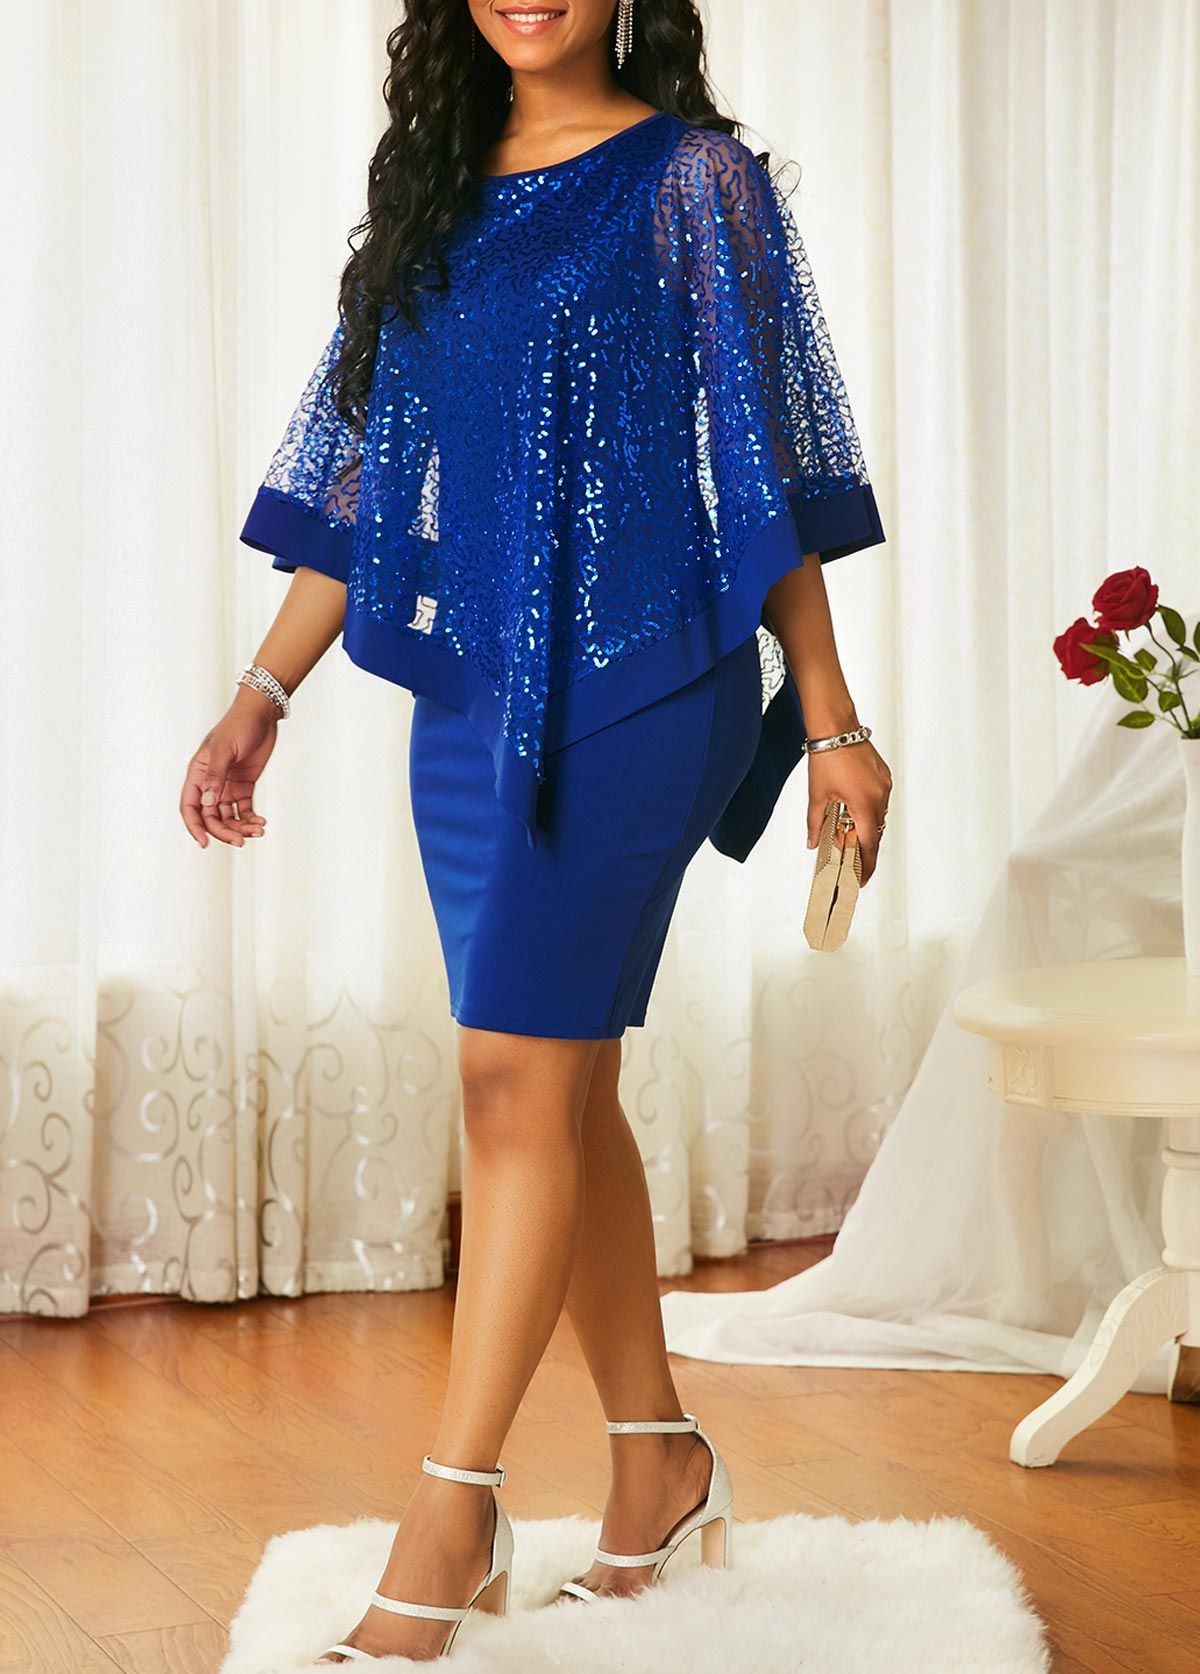 55de1478e87 Overlay Sequin Detail Blue Sheath Dress | Rotita.com - USD $35.52 ...